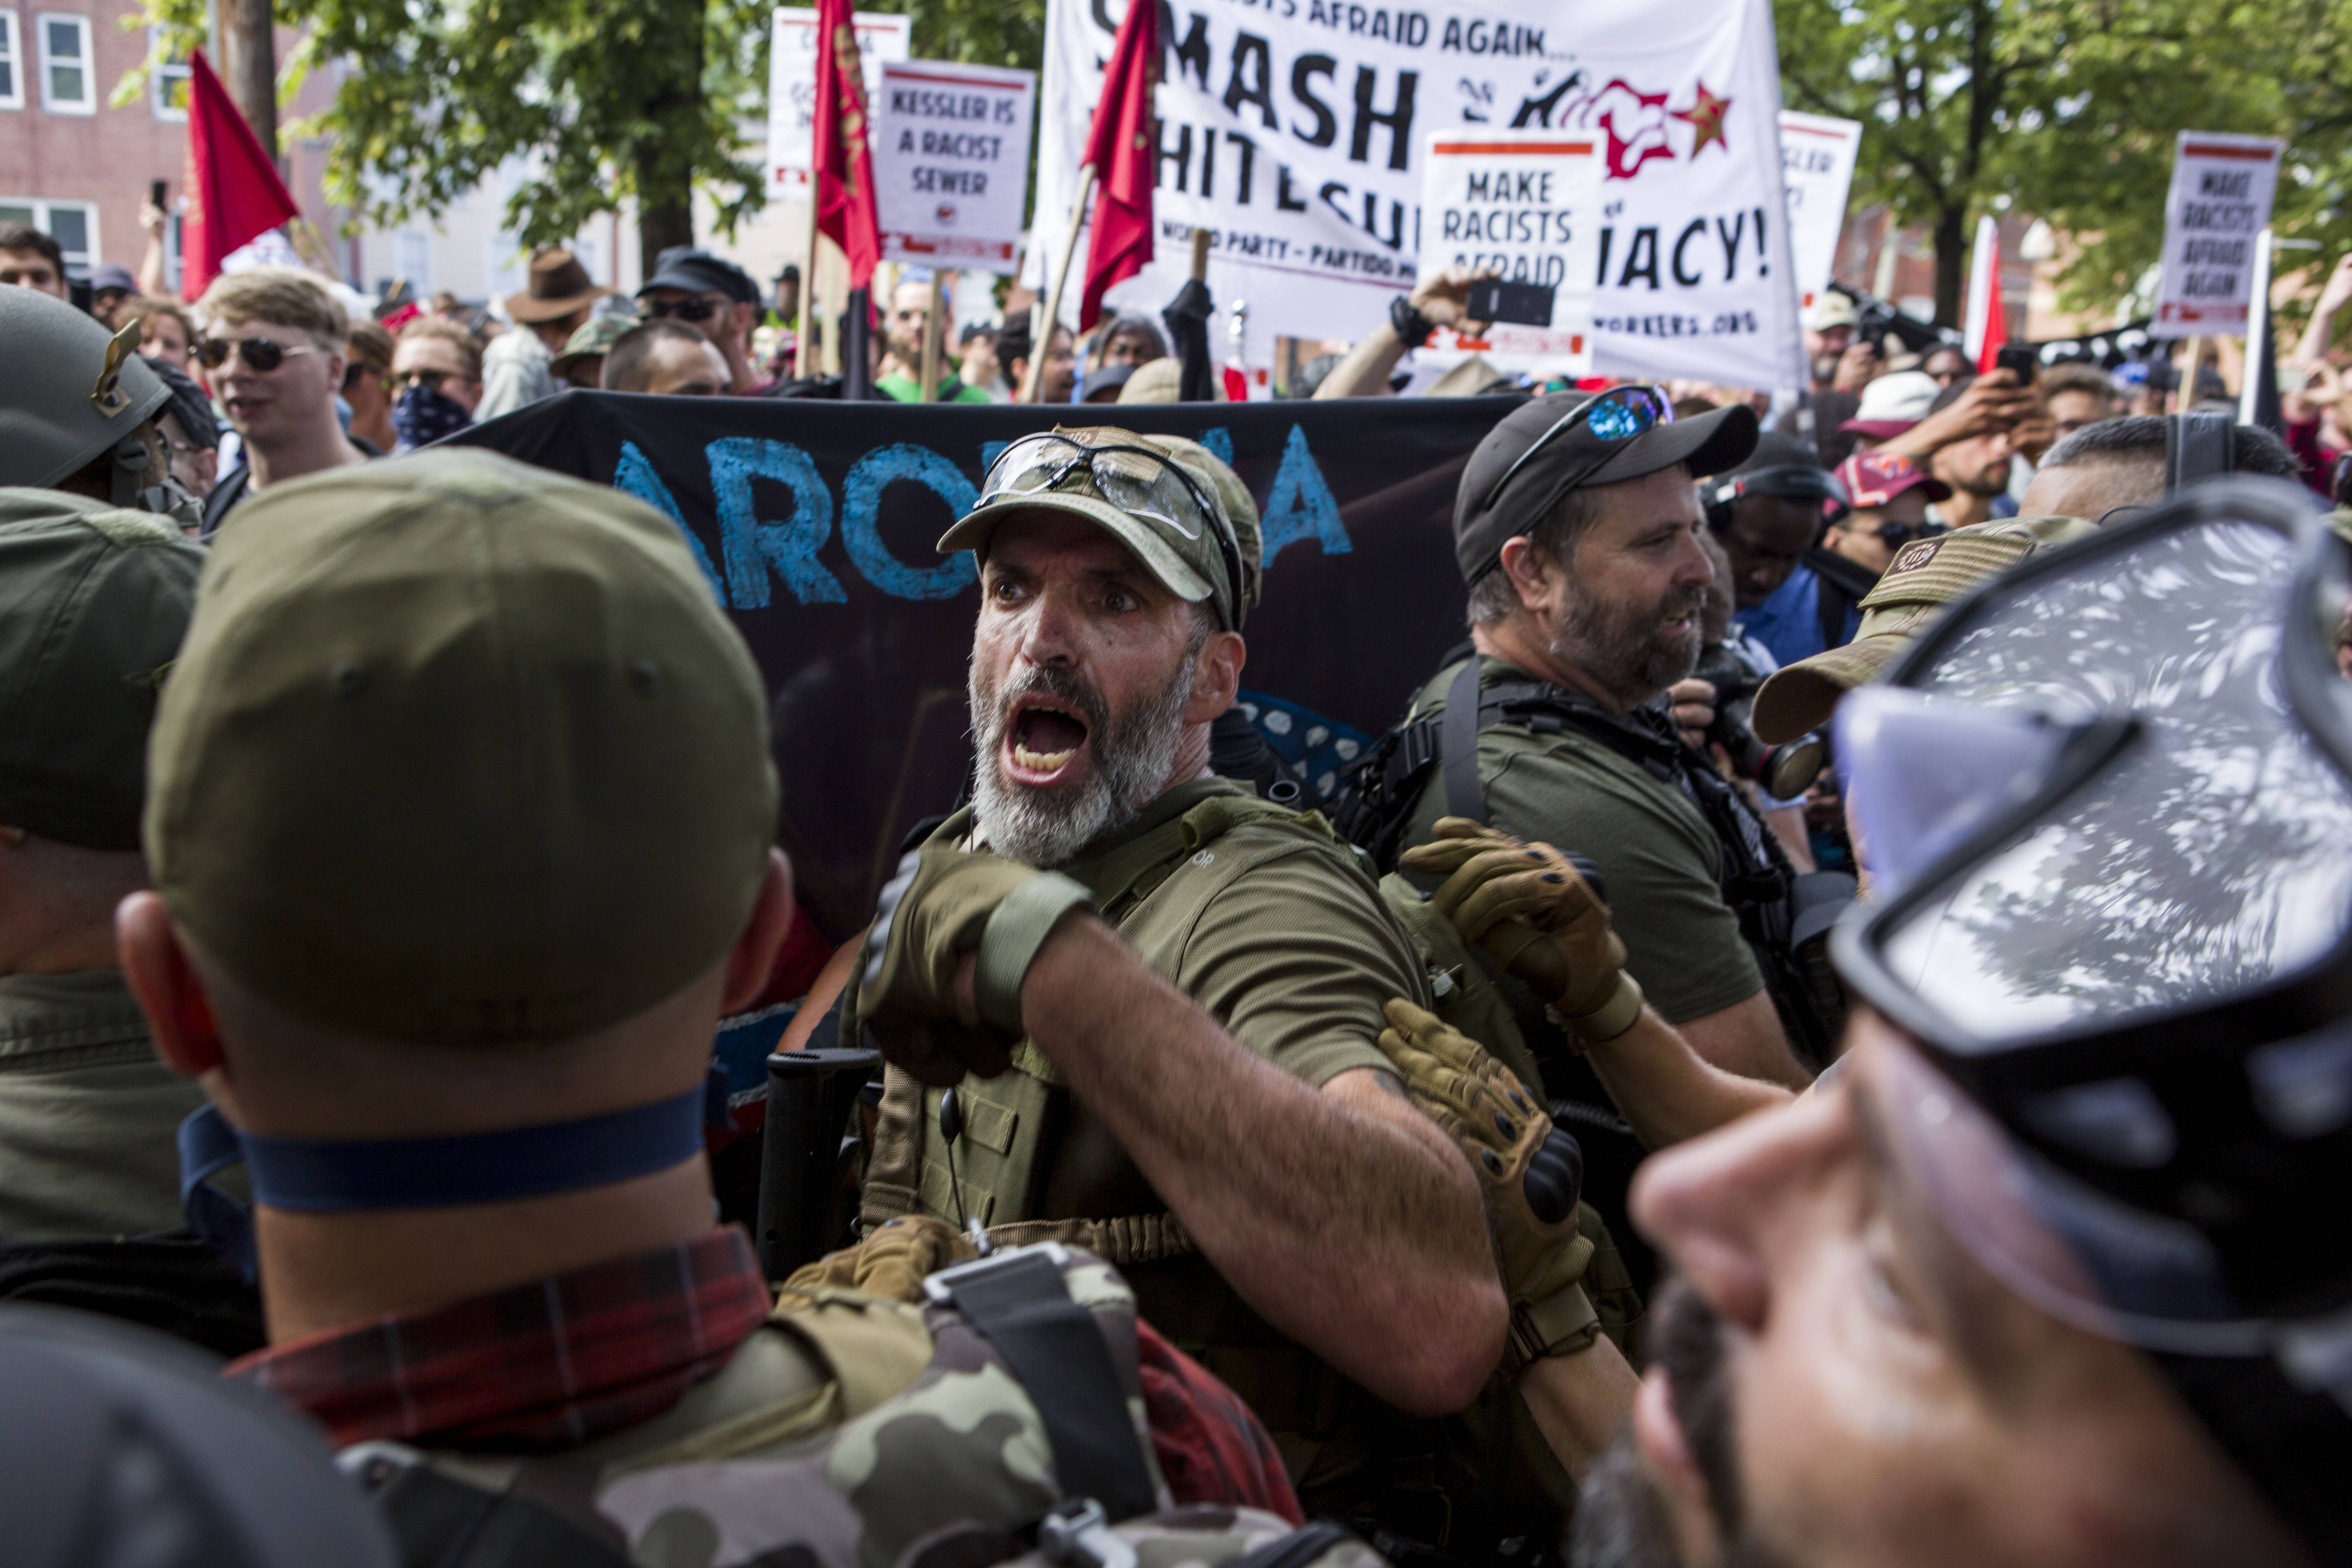 A protester shouts during a Unite the Right rally on Saturday in Charlottesville, Virginia.